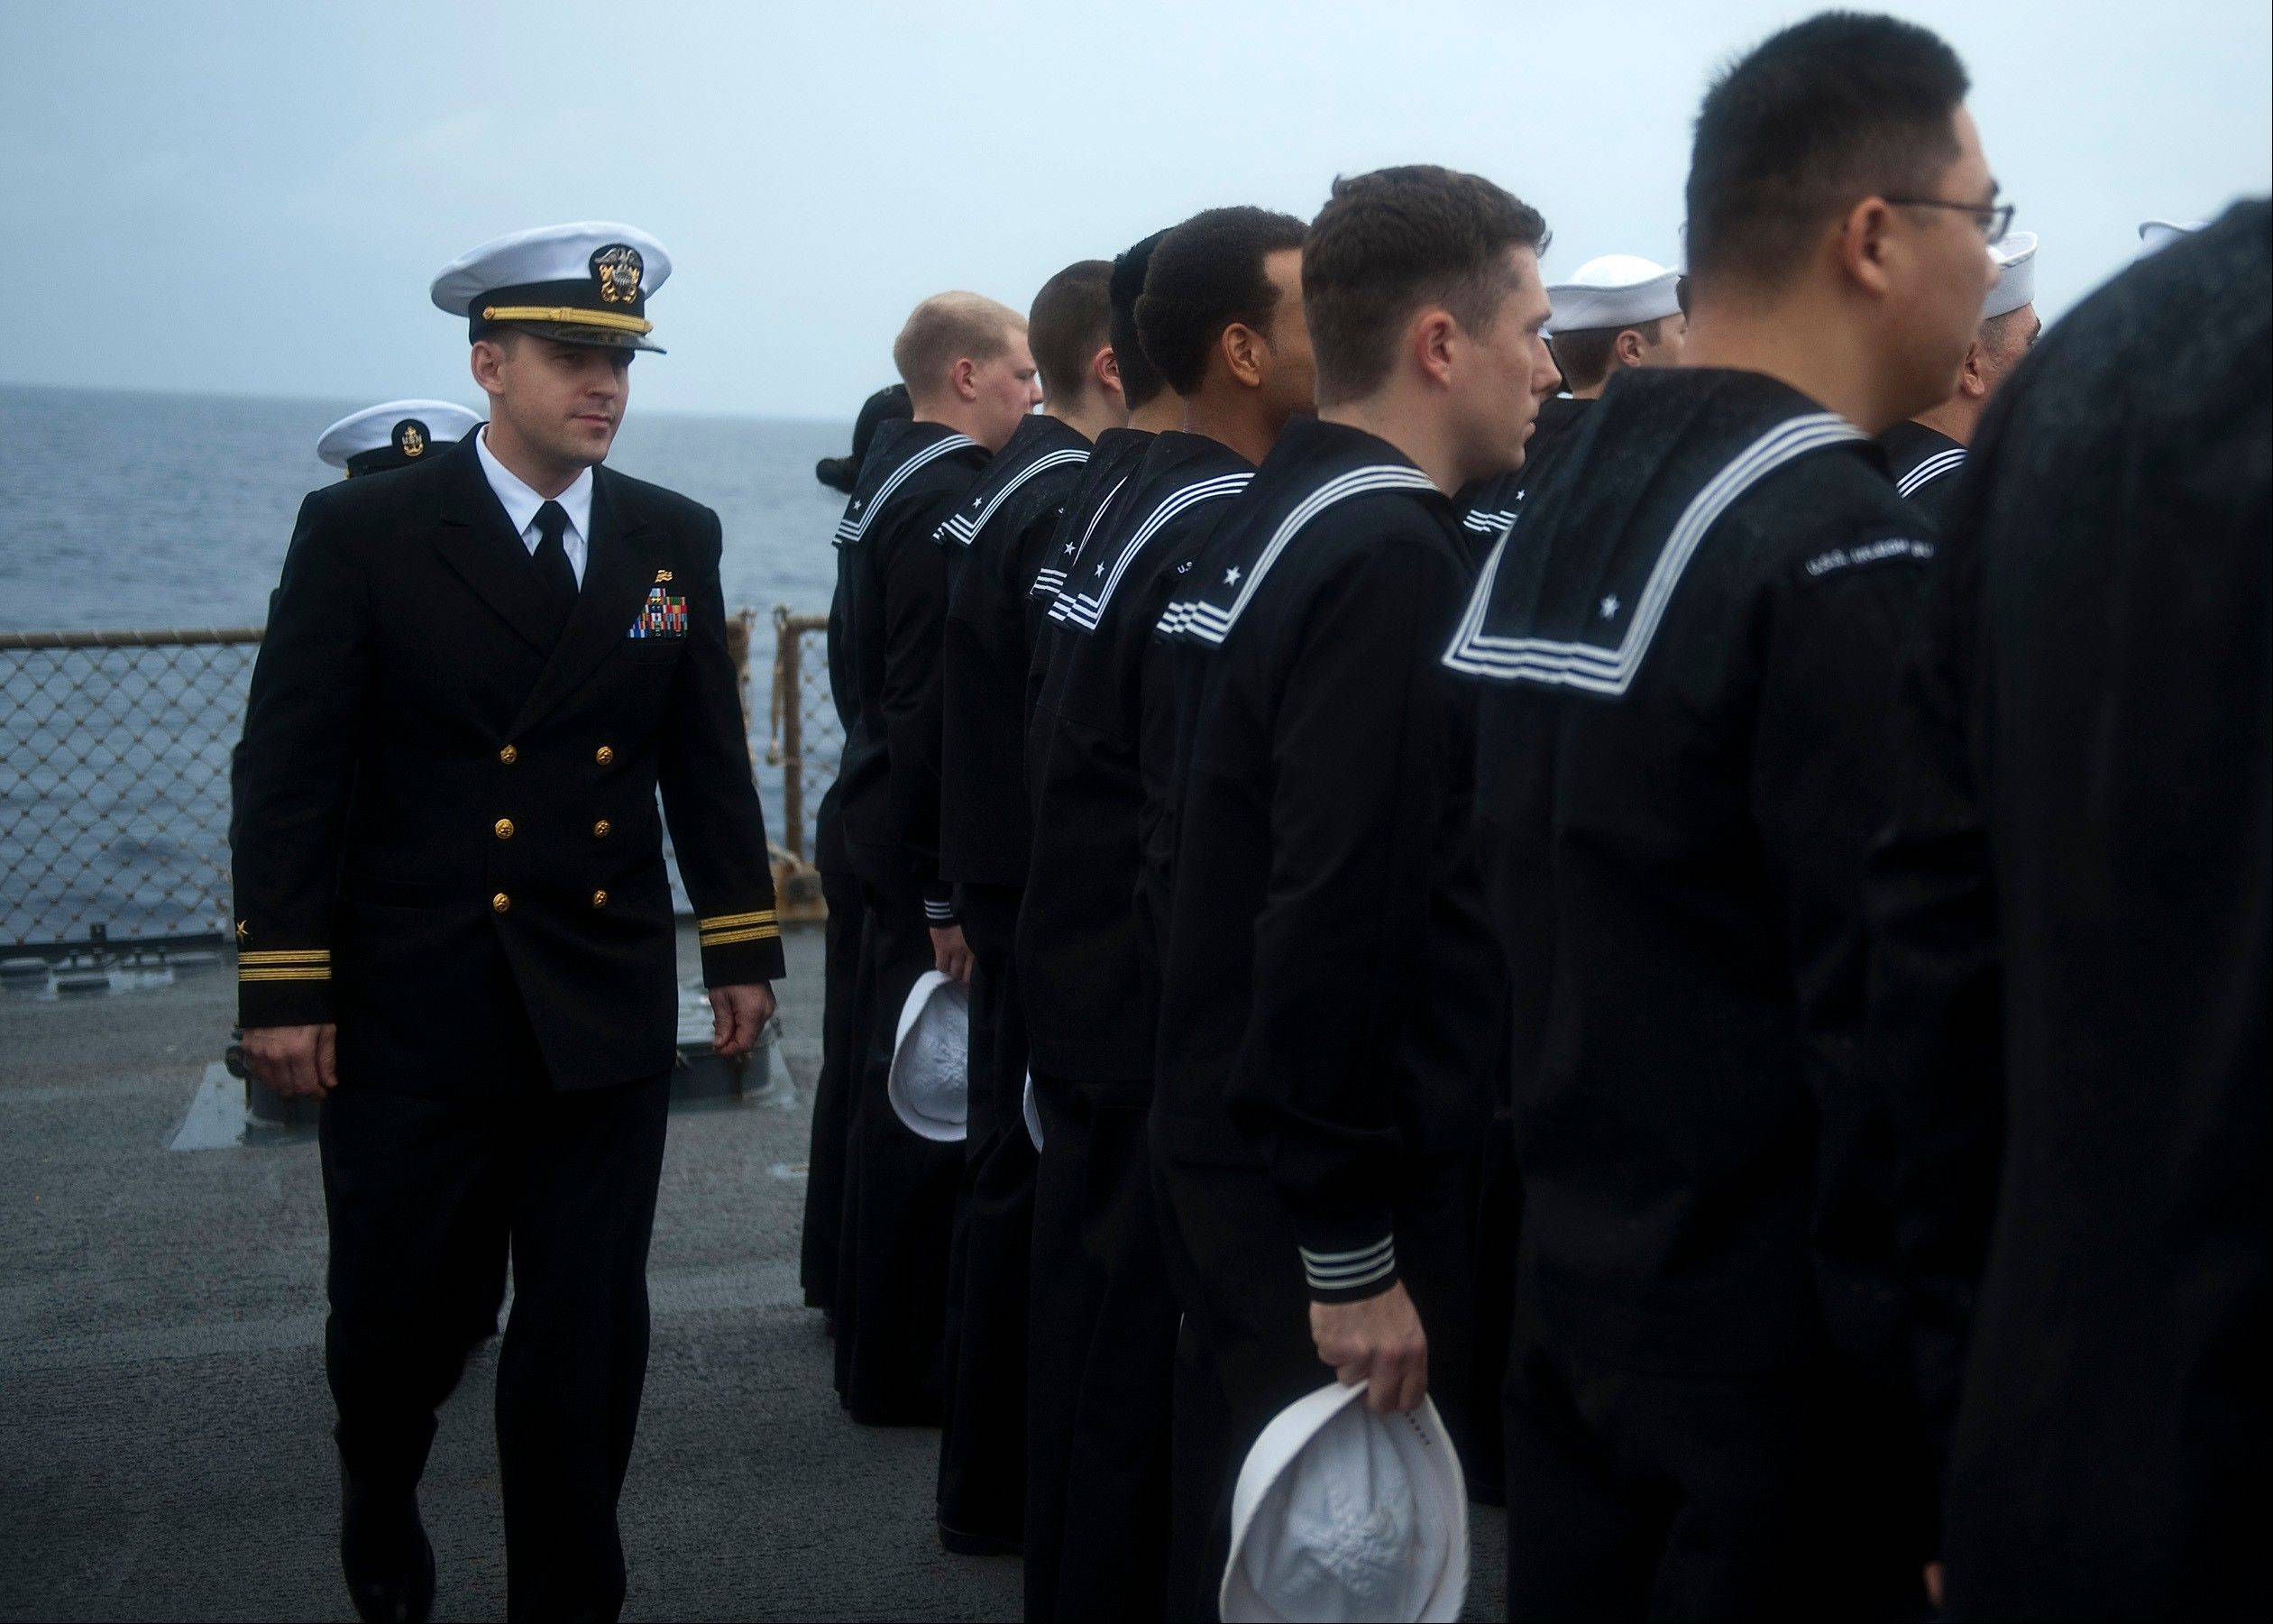 Lt. Joshua Welle, chief engineer for the guided-missile destroyer USS Arleigh Burke, inspects engineering department Sailors' dress blue uniforms after an exercise in the Atlantic Ocean. As president of a class of 980 midshipmen, Welle had heard about Marine Capt. Matthew C. Freeman. But he did not come to know his classmate until after his death. Welle, a lieutenant commander in the Navy, is back in the States for three weeks' leave. He is using part of that time to travel the country and tell audiences about Freeman and other classmates who have sacrificed in the ongoing War on Terror.